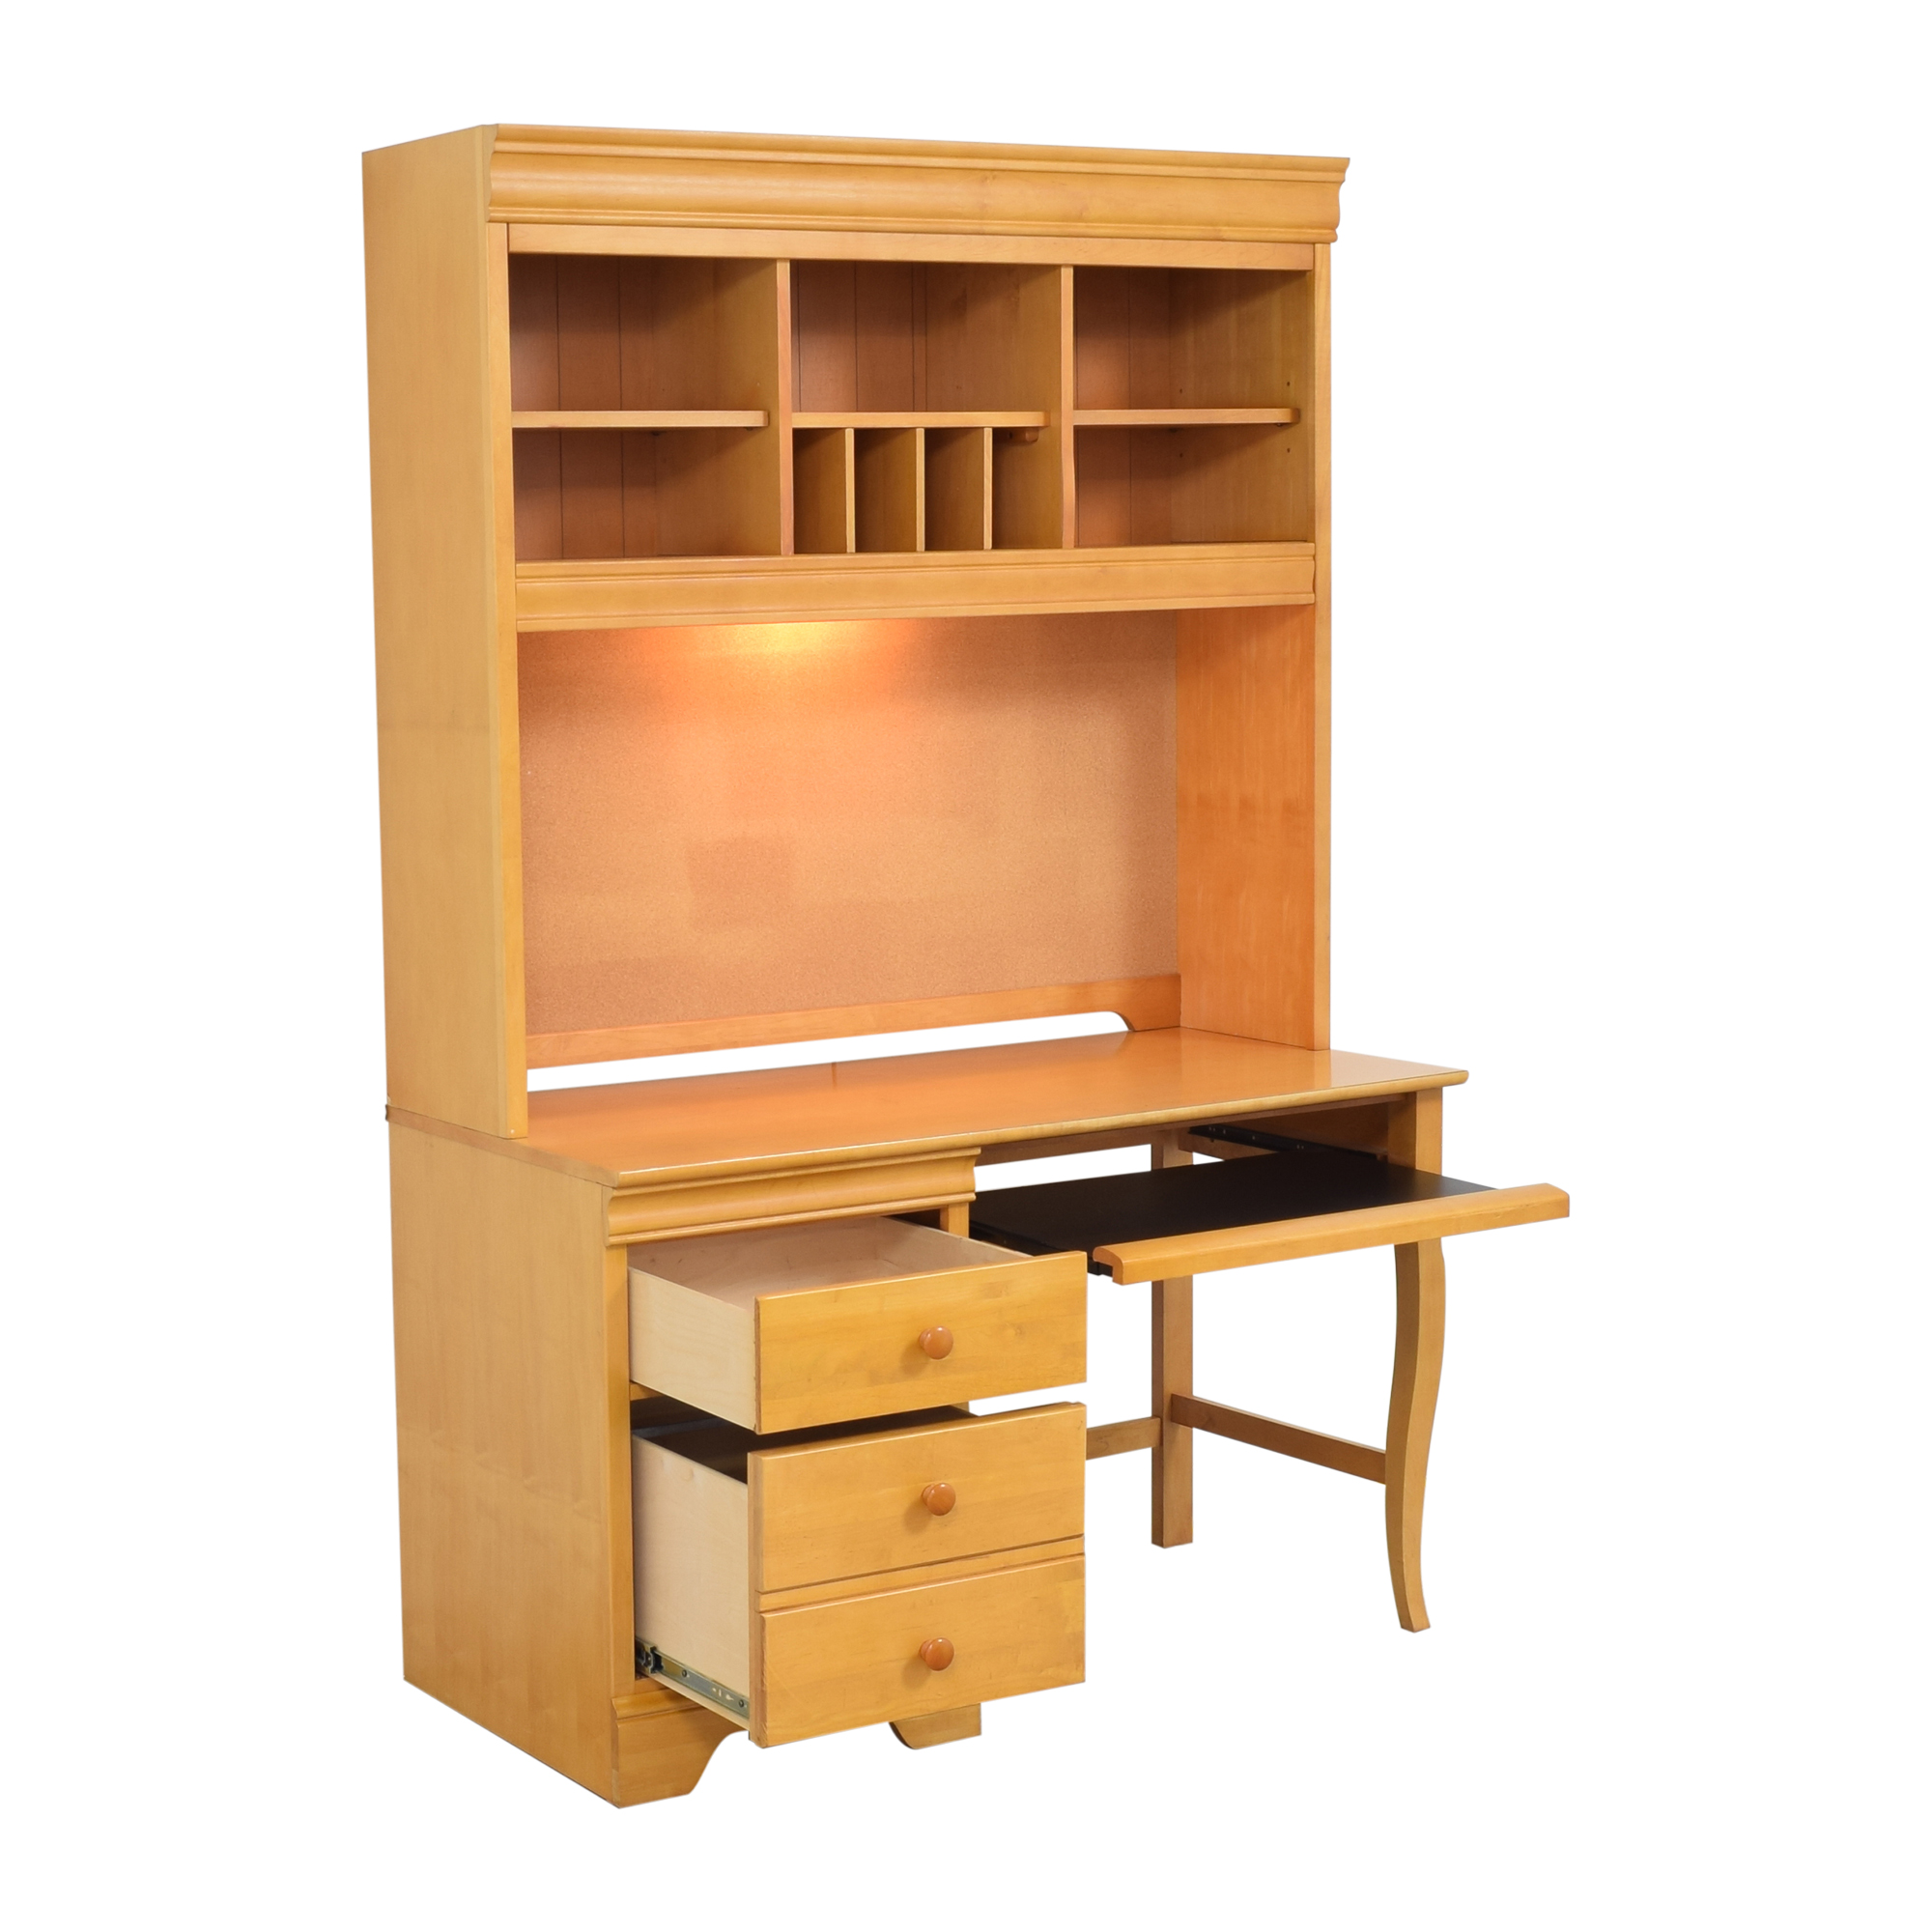 Stanley Furniture Stanley Furniture Pedestal Desk with Hutch Home Office Desks